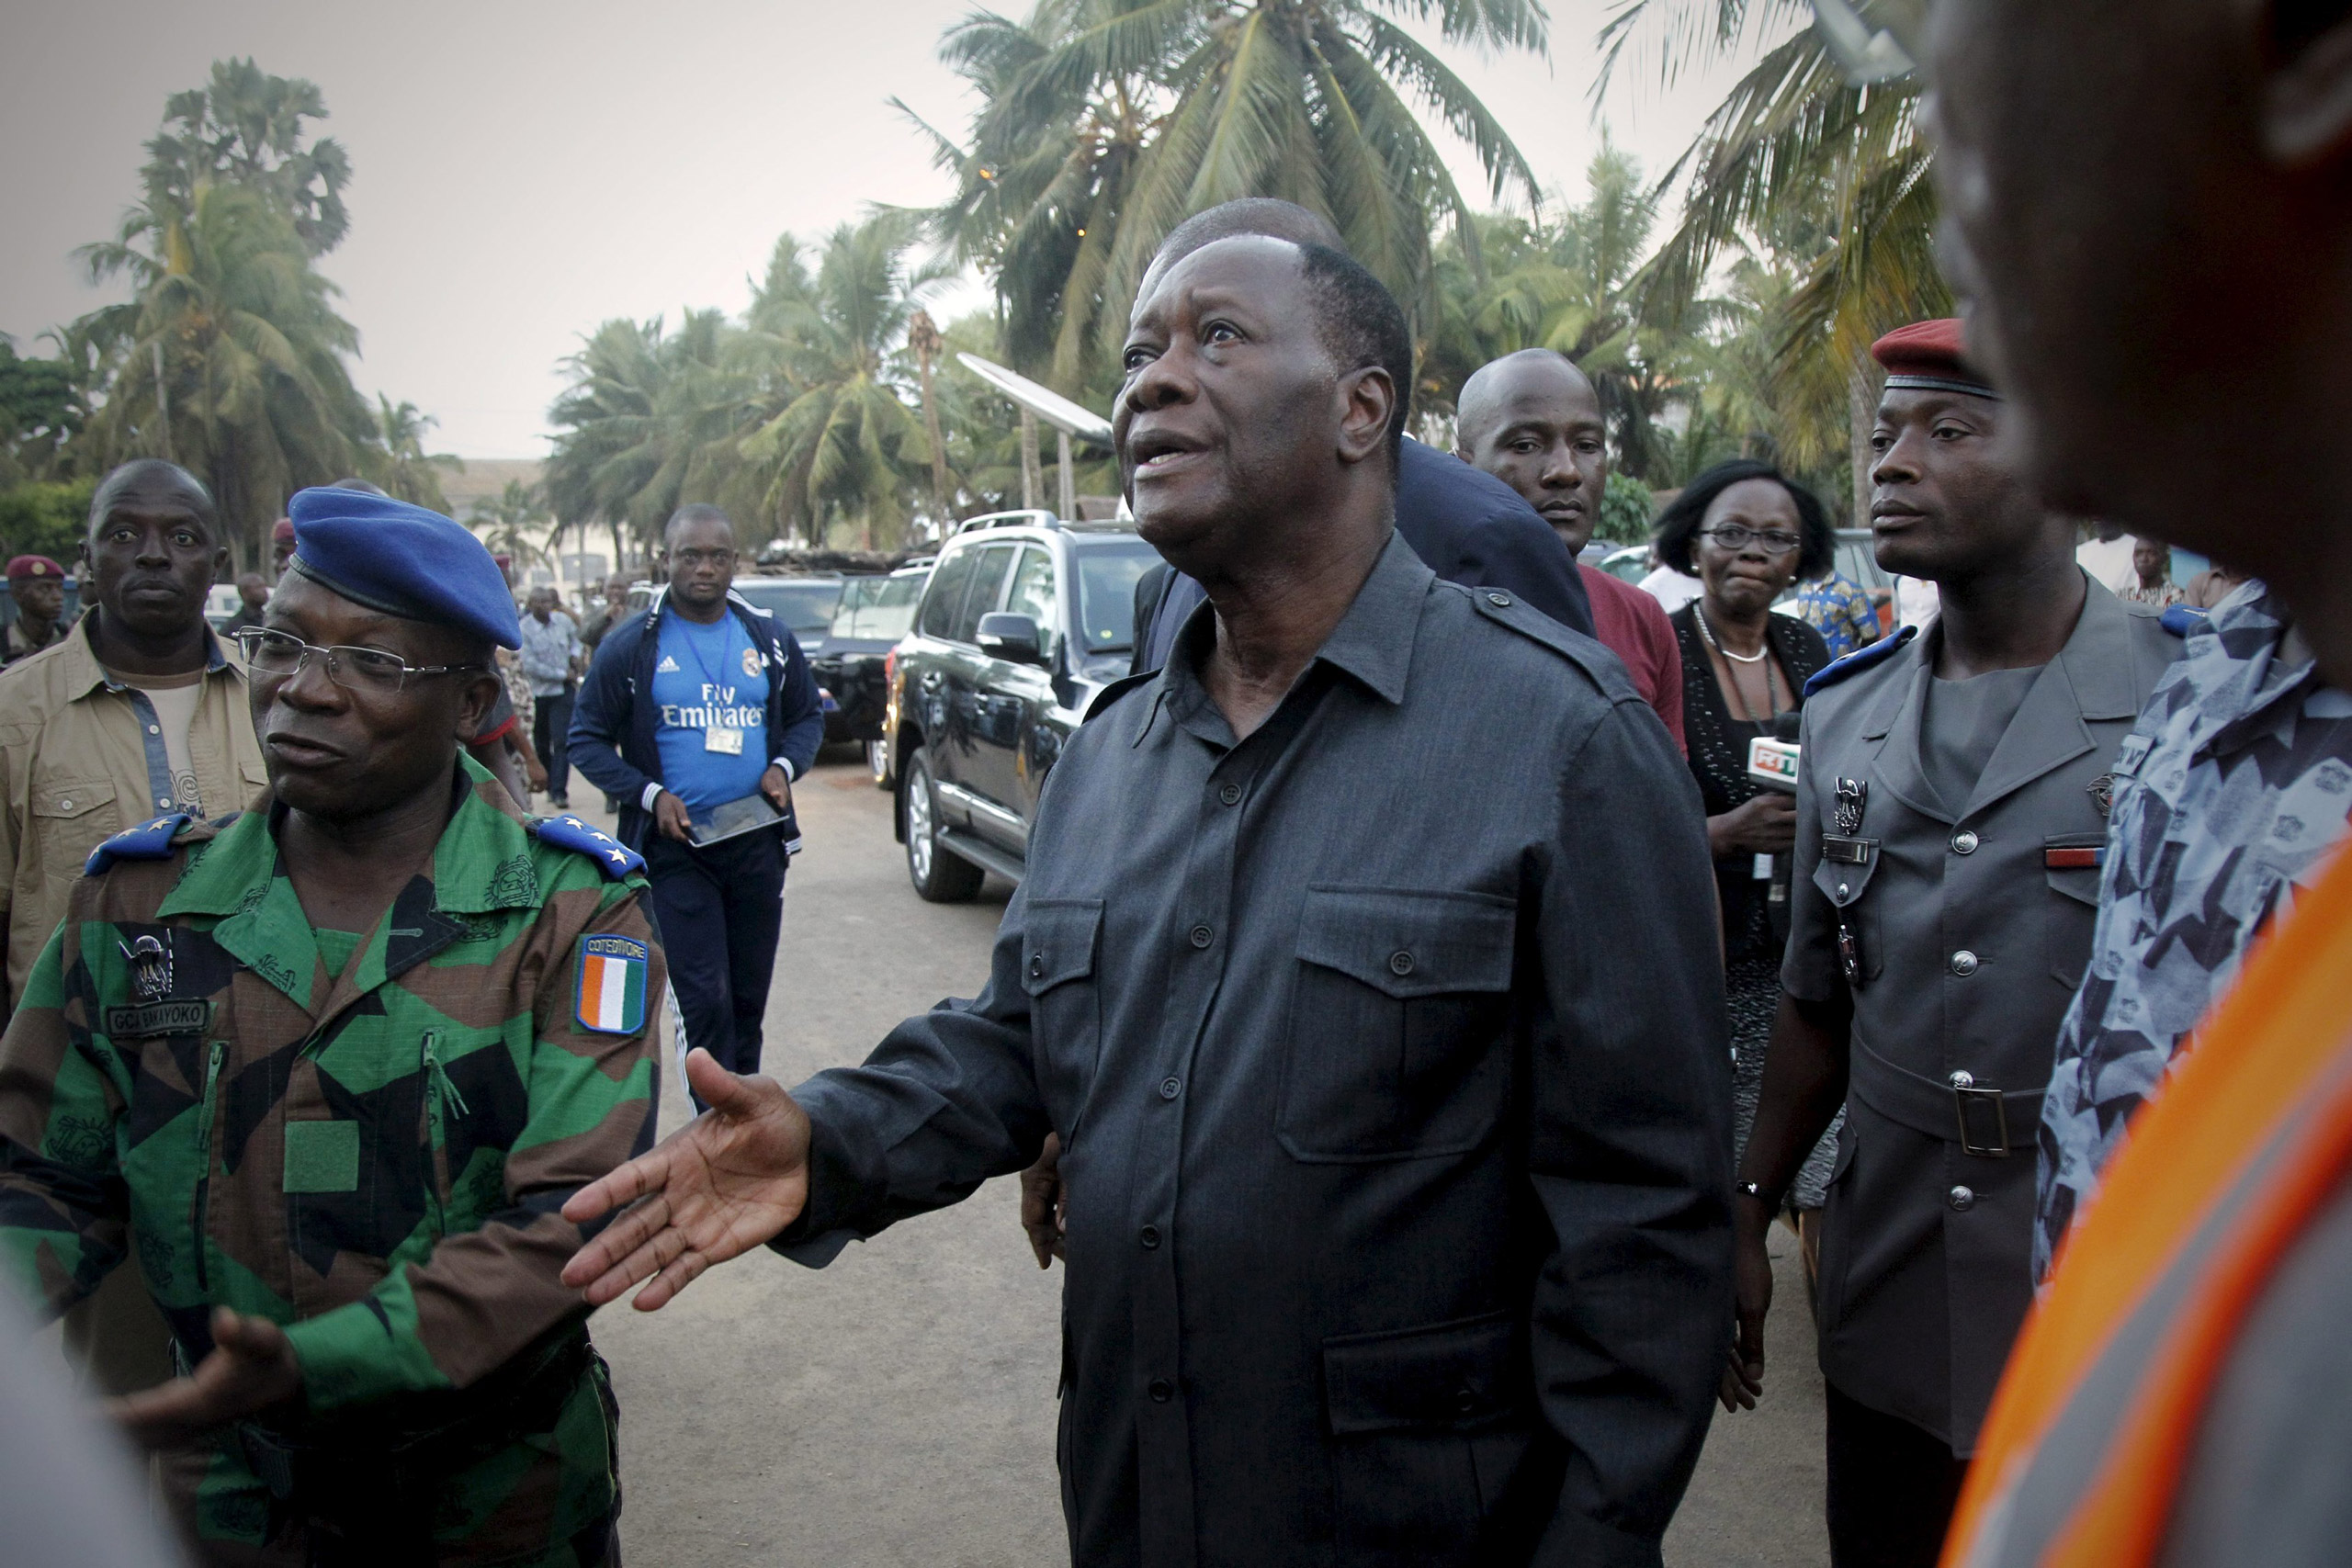 Ivory Coast's President Alassane Ouattara reacts next to Ivory Coast's army chief Soumaila Bakayoko as he arrives at the hotel Etoile du Sud after the attacks in Grand Bassam, Ivory Coast, on March 13, 2016.